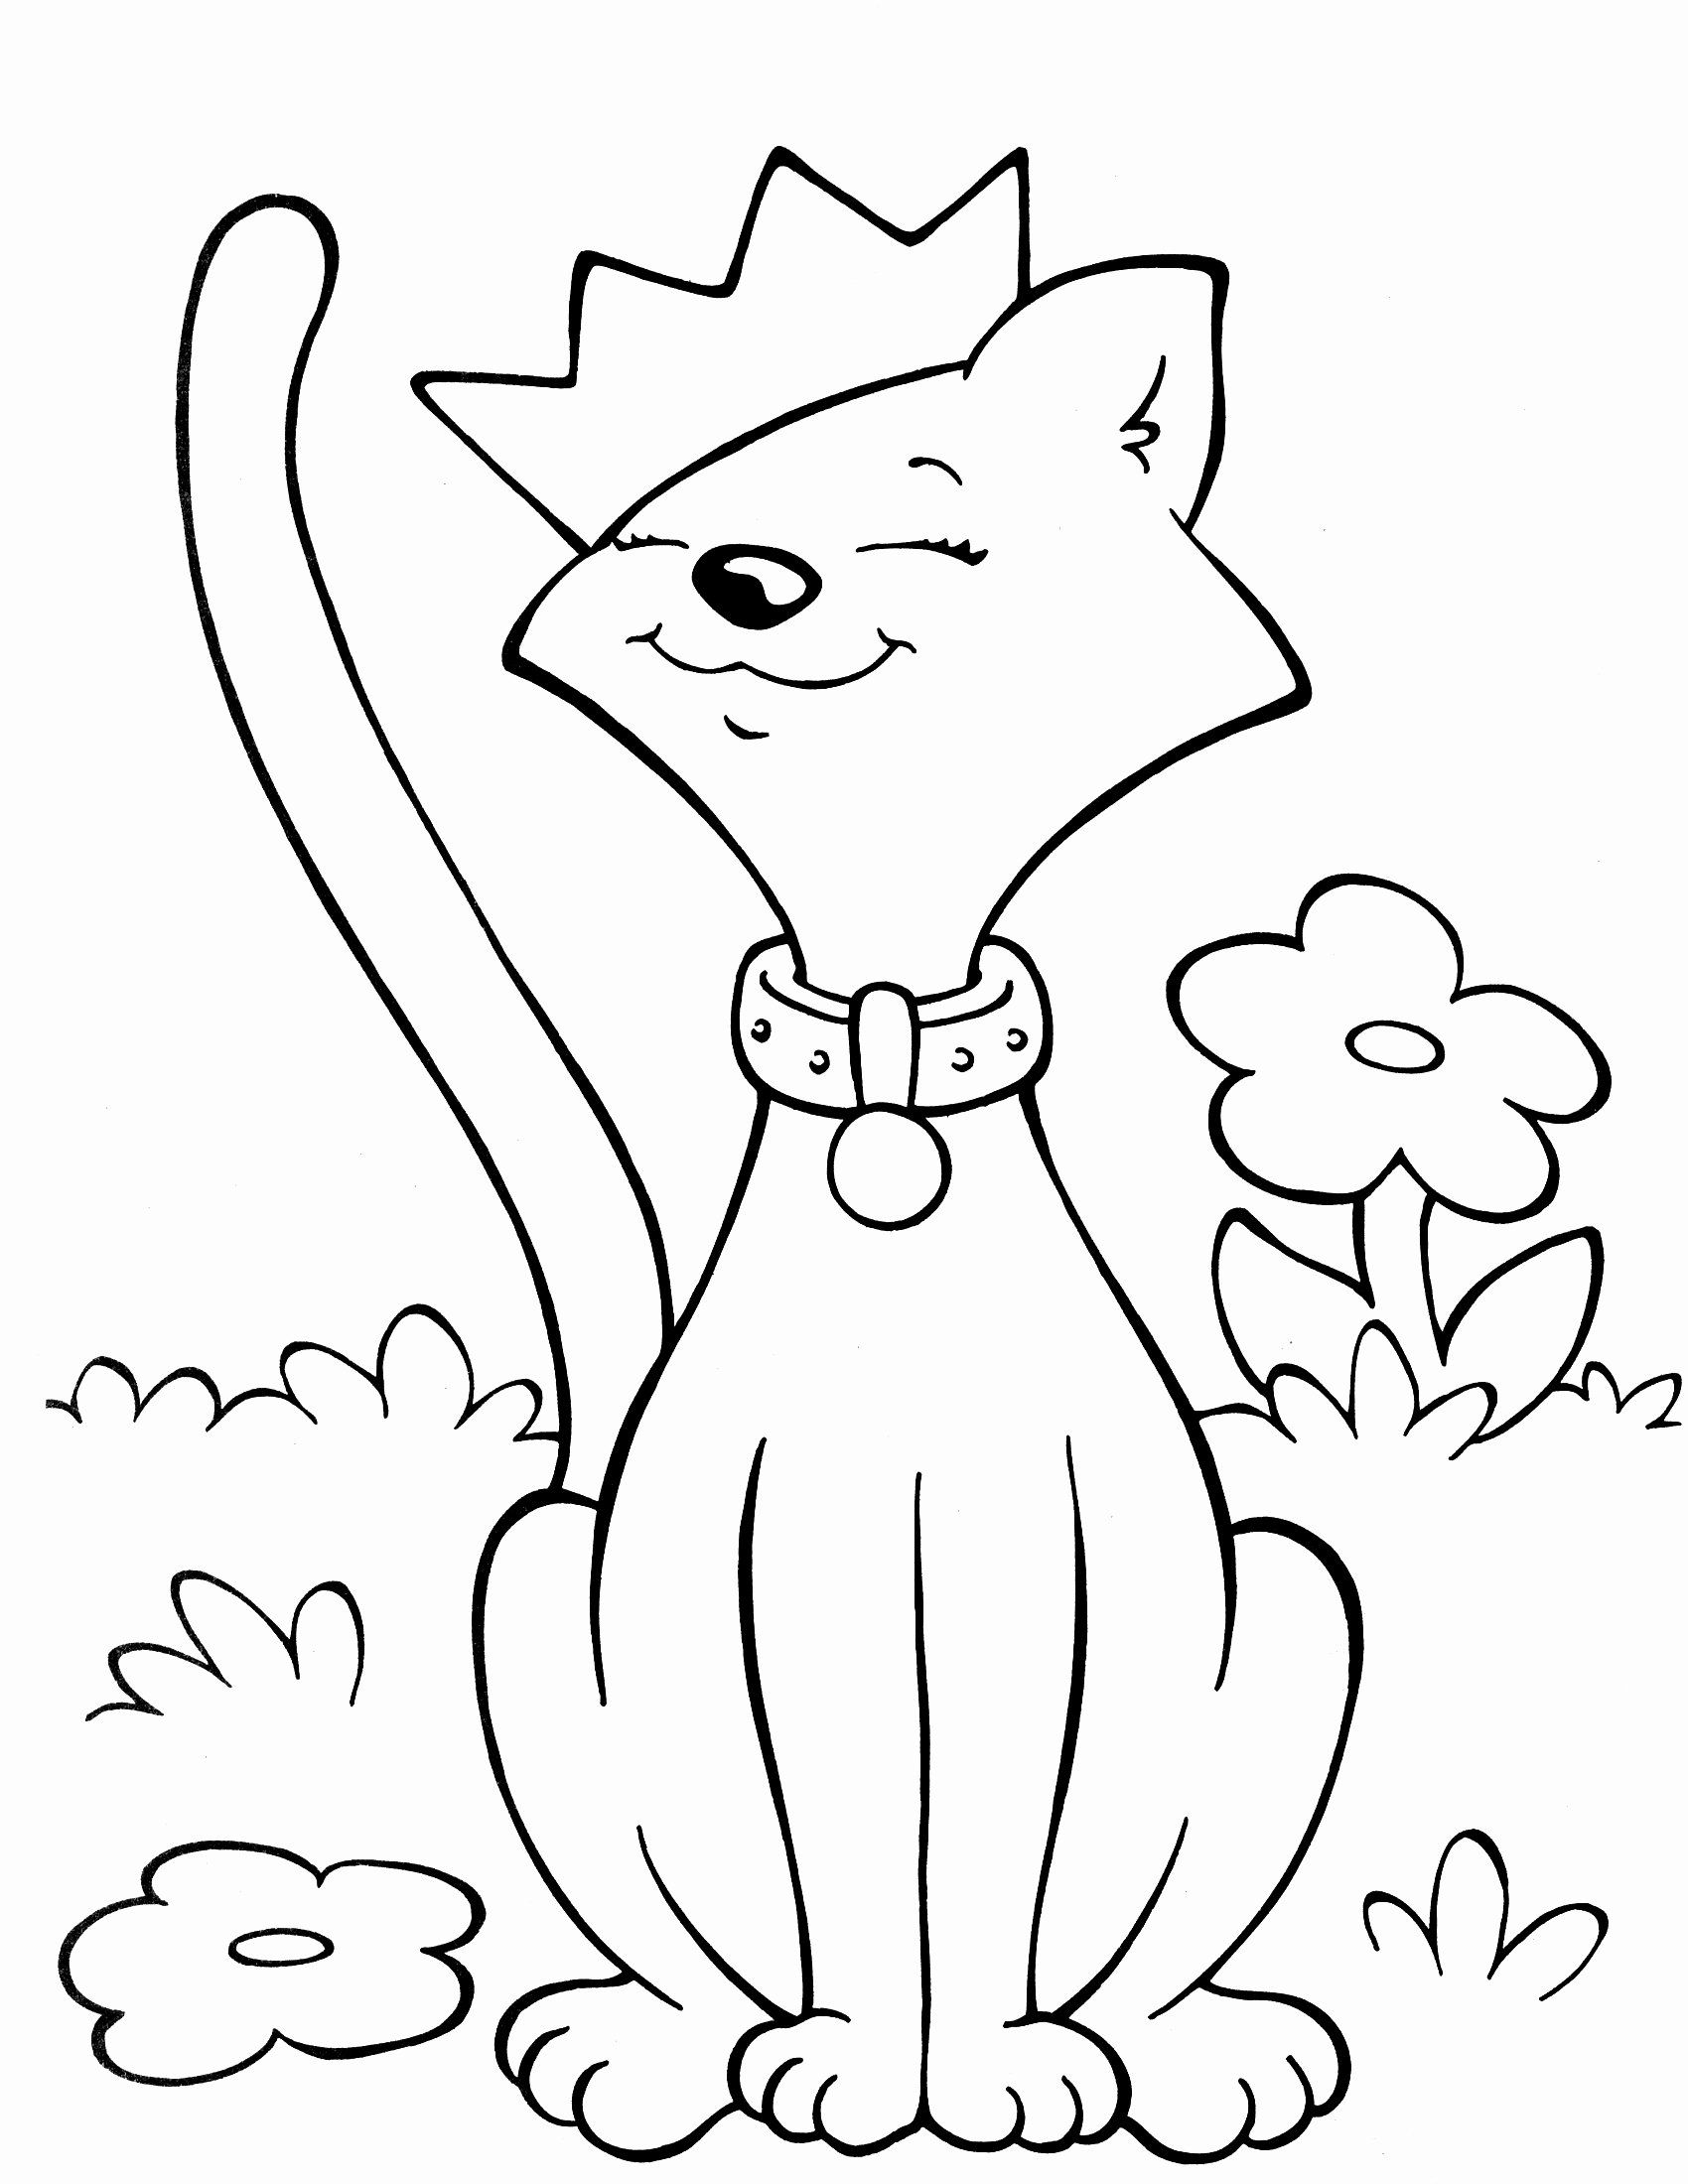 Turn Photo Into Coloring Page Free Online Lovely Turn Image Into Coloring Page At Getcolor In 2020 Ariel Coloring Pages Halloween Coloring Pages Cartoon Coloring Pages